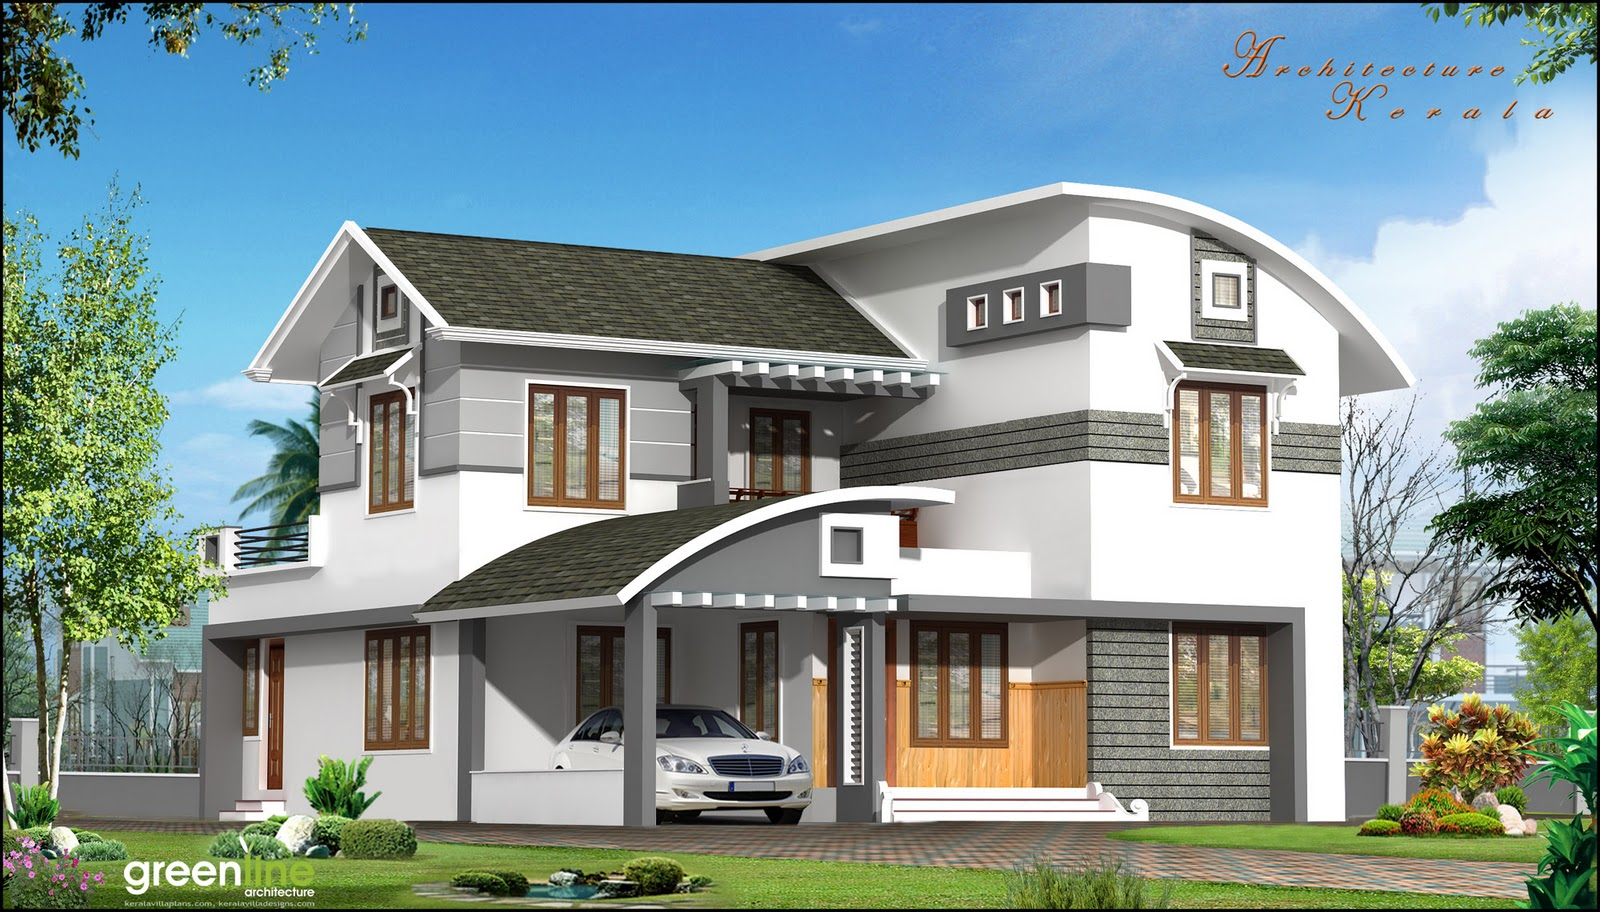 Architecture kerala a beautiful house elevation for House plans with photos in kerala style